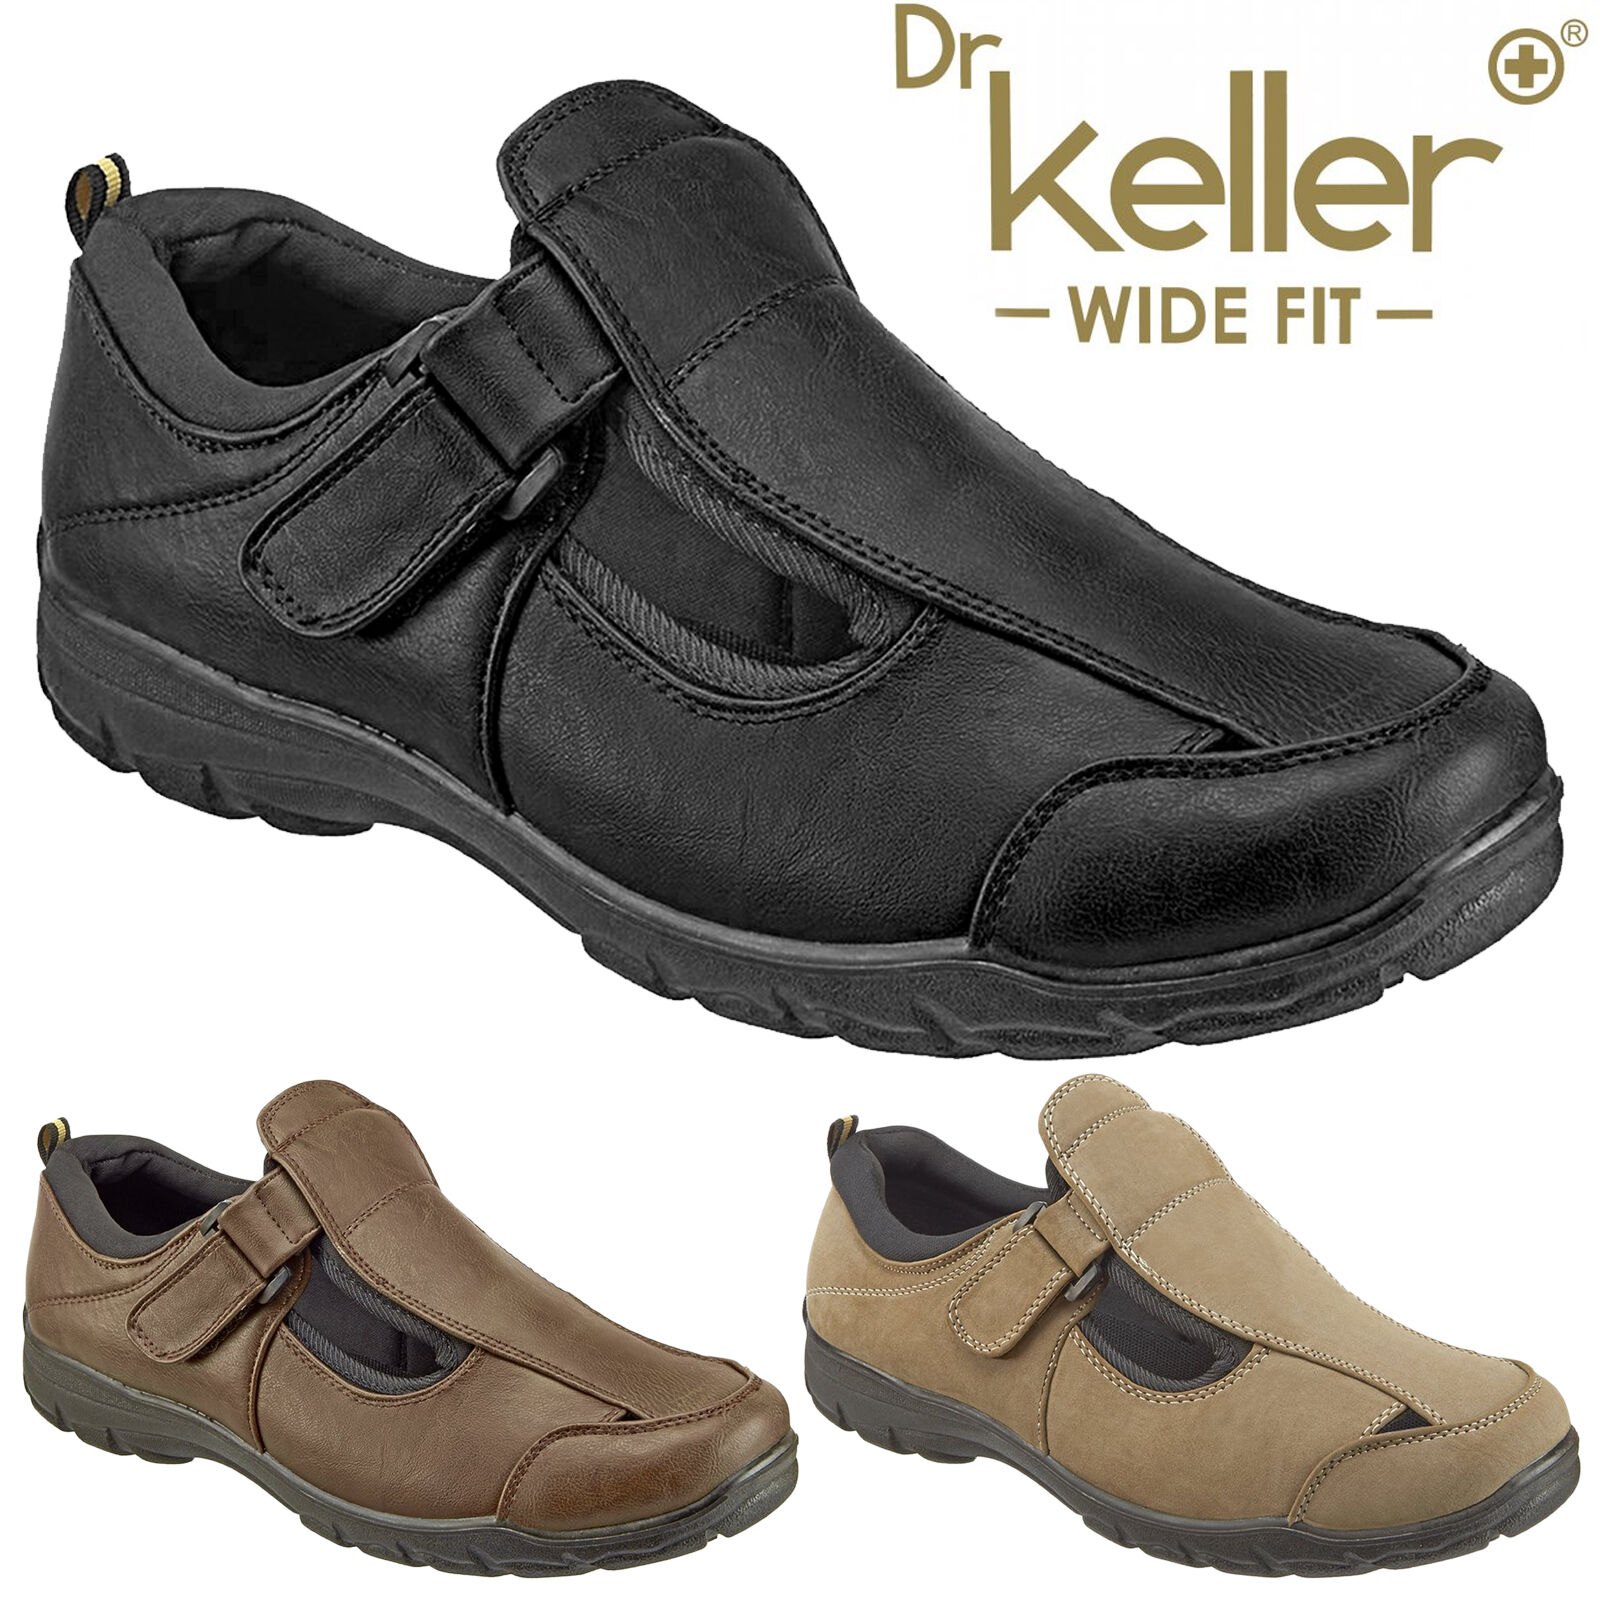 DR KELLER MENS WIDE FIT SANDALS LIGHTWEIGHT SUMMER SHOES CLOSED TOE CASUAL SMART SHOES SUMMER 90ca17